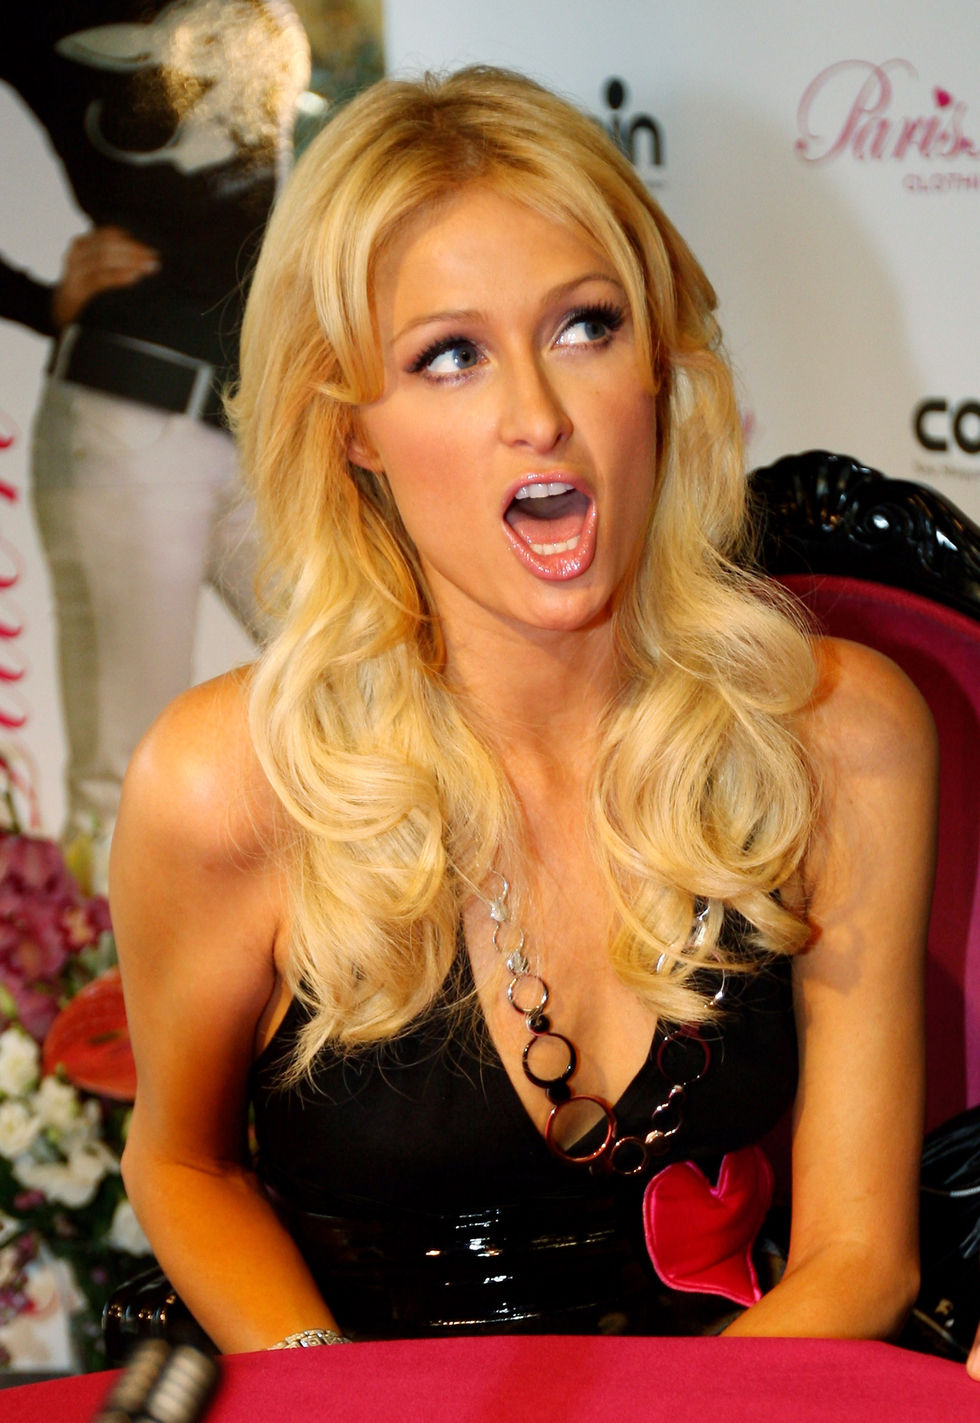 paris-hilton-paris-hilton-clothing-line-european-launch-in-milan-11